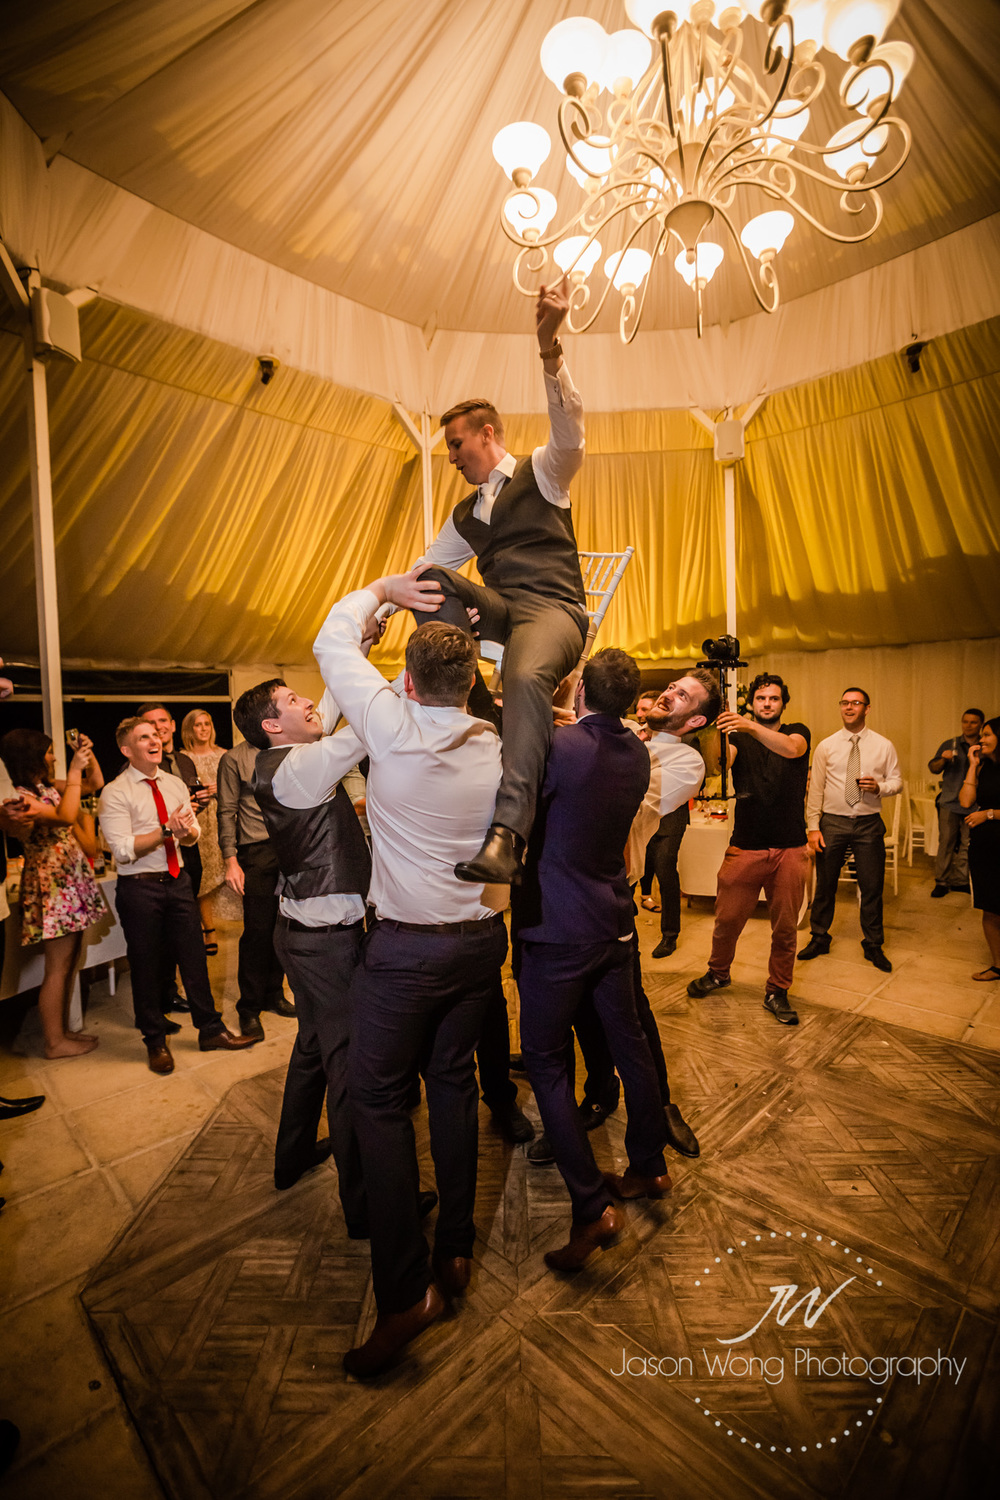 groom-having-fun-getting-toss.jpg